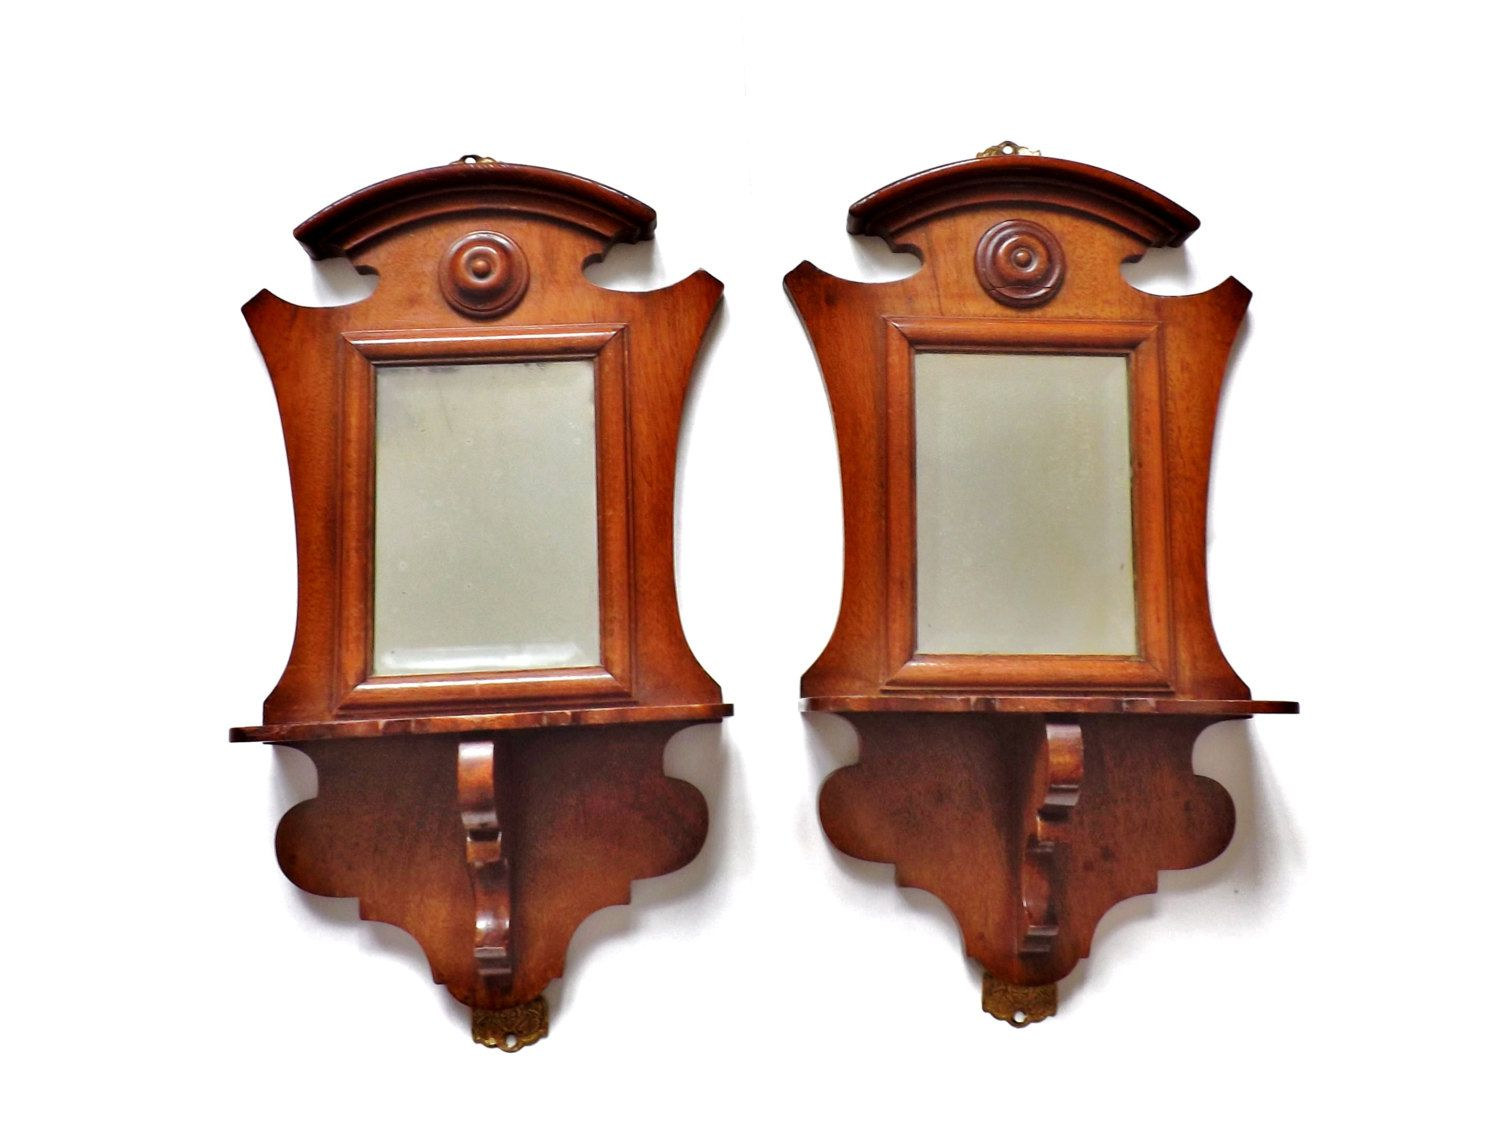 Mirror Sconces Wall Decor: Small Antique Mirror, Victorian Wooden Shelf, Hanging